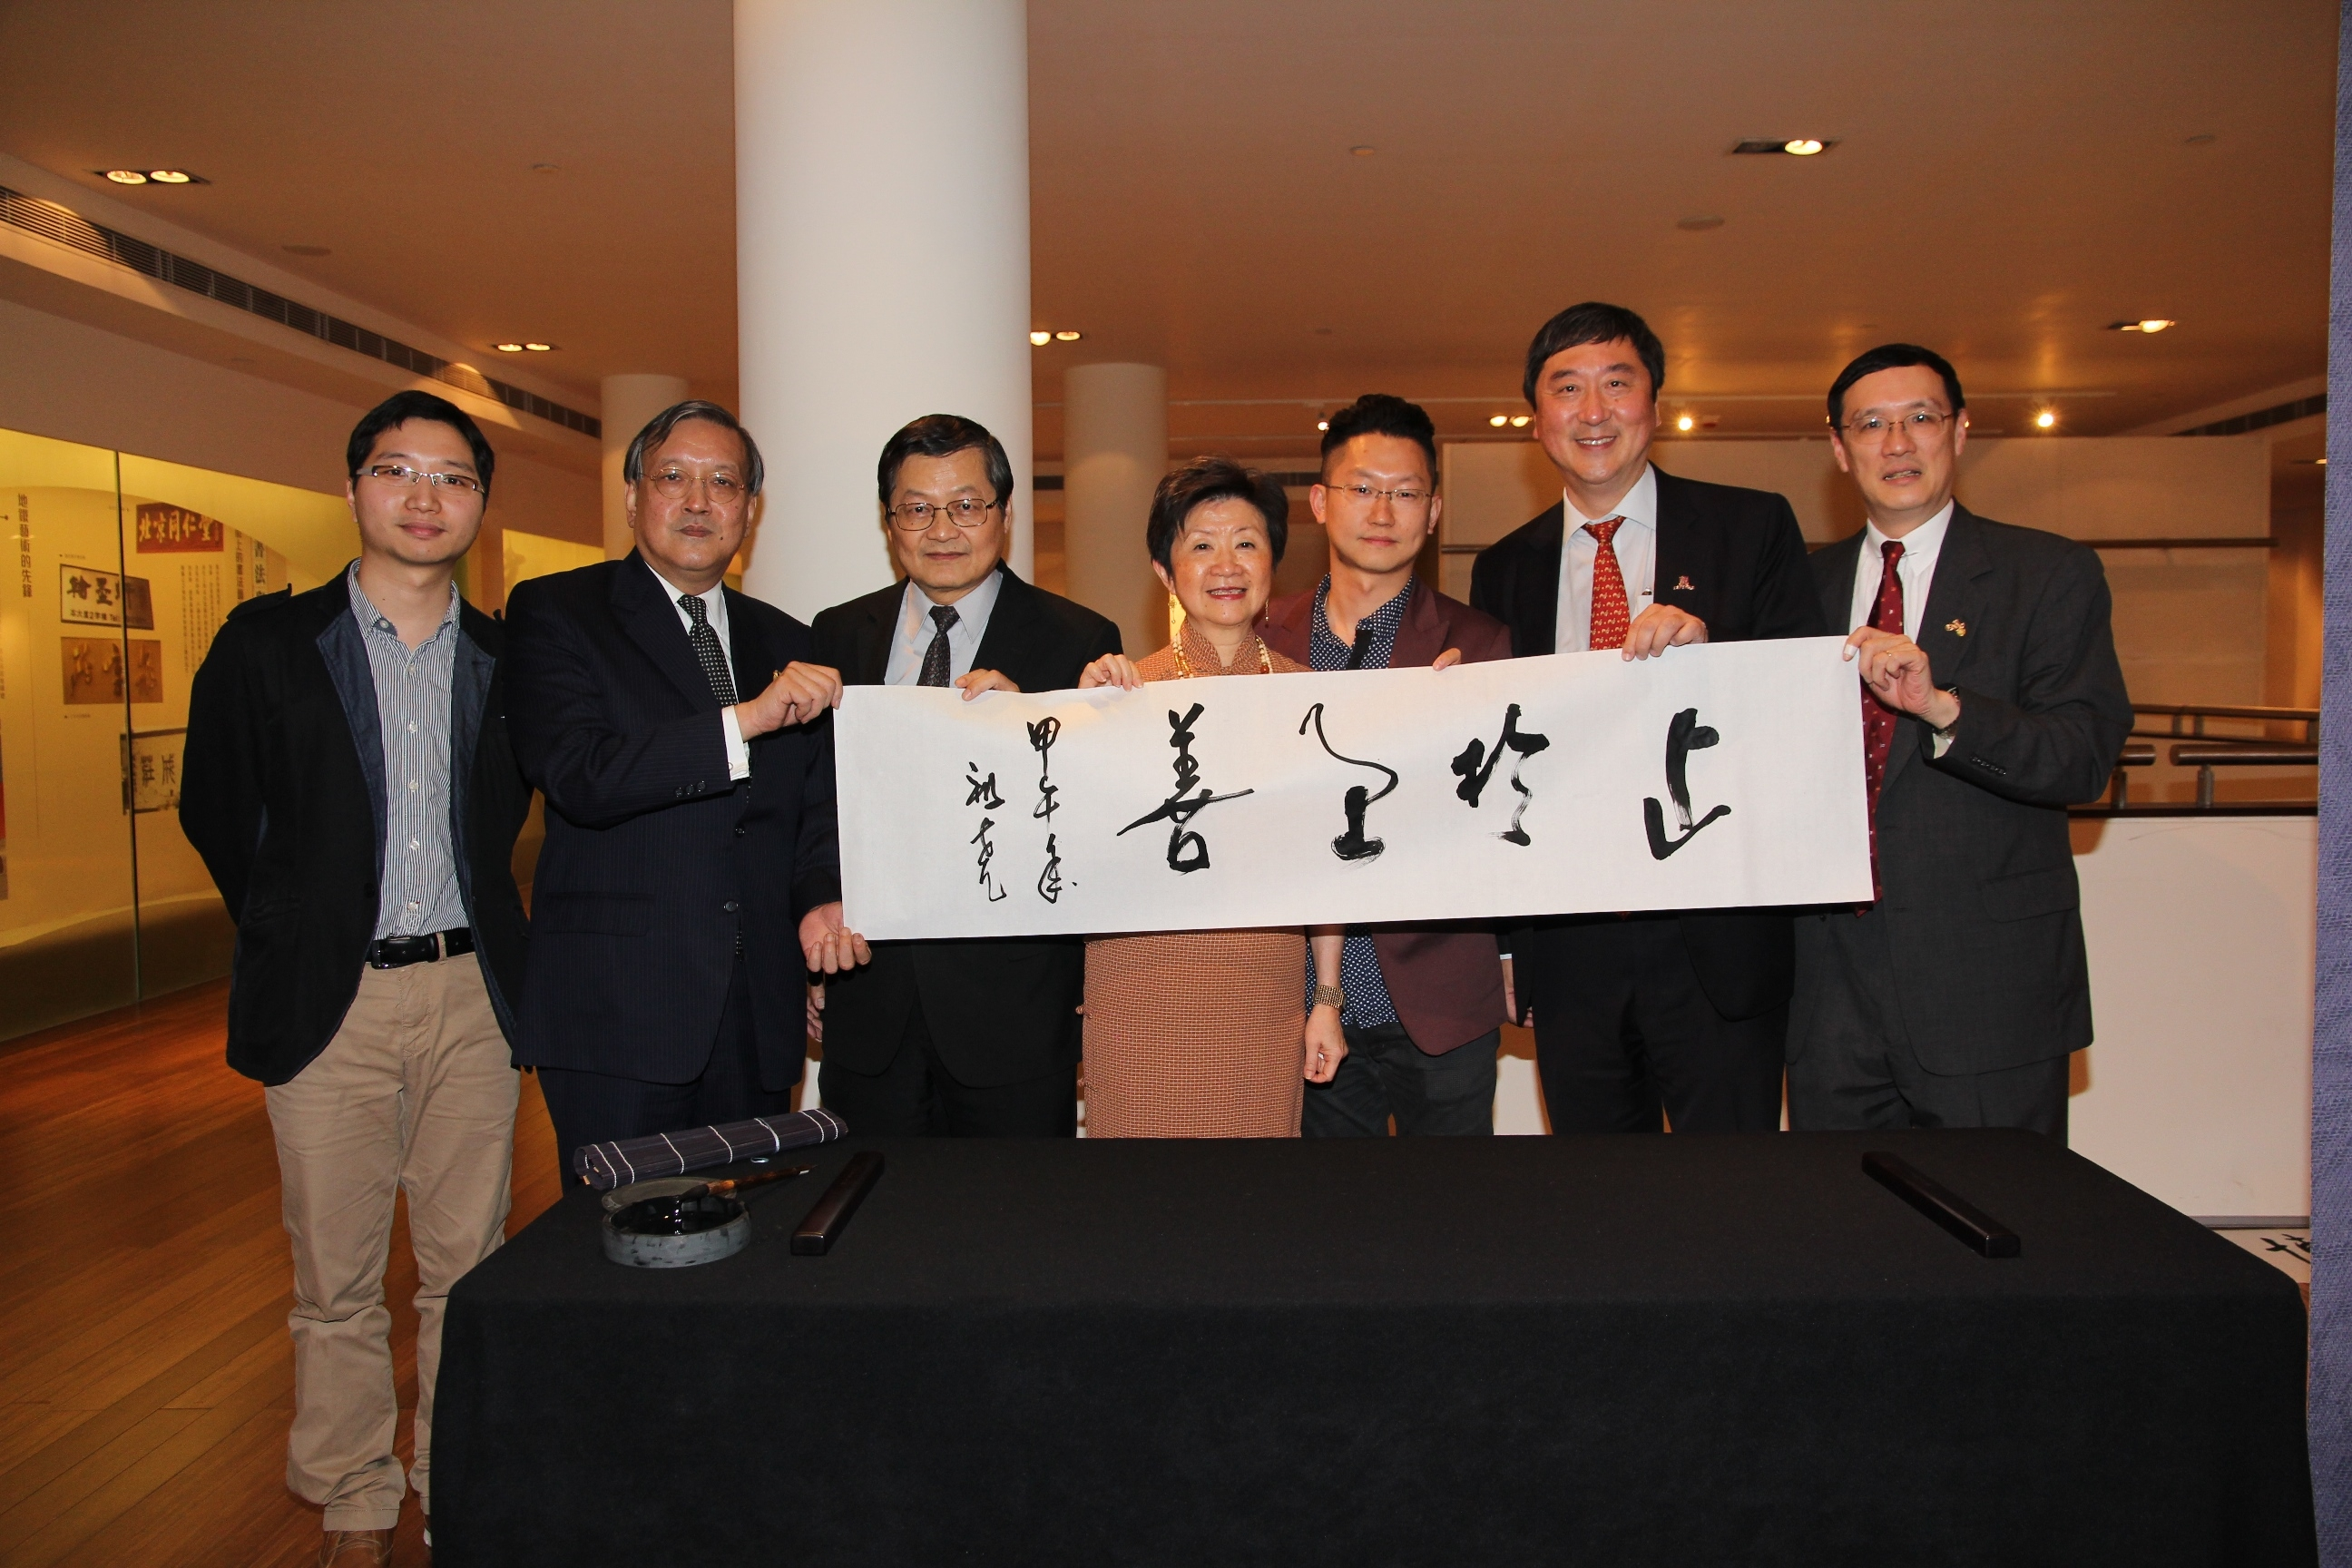 A group photo with Prof. Joseph Sung's calligraphy.